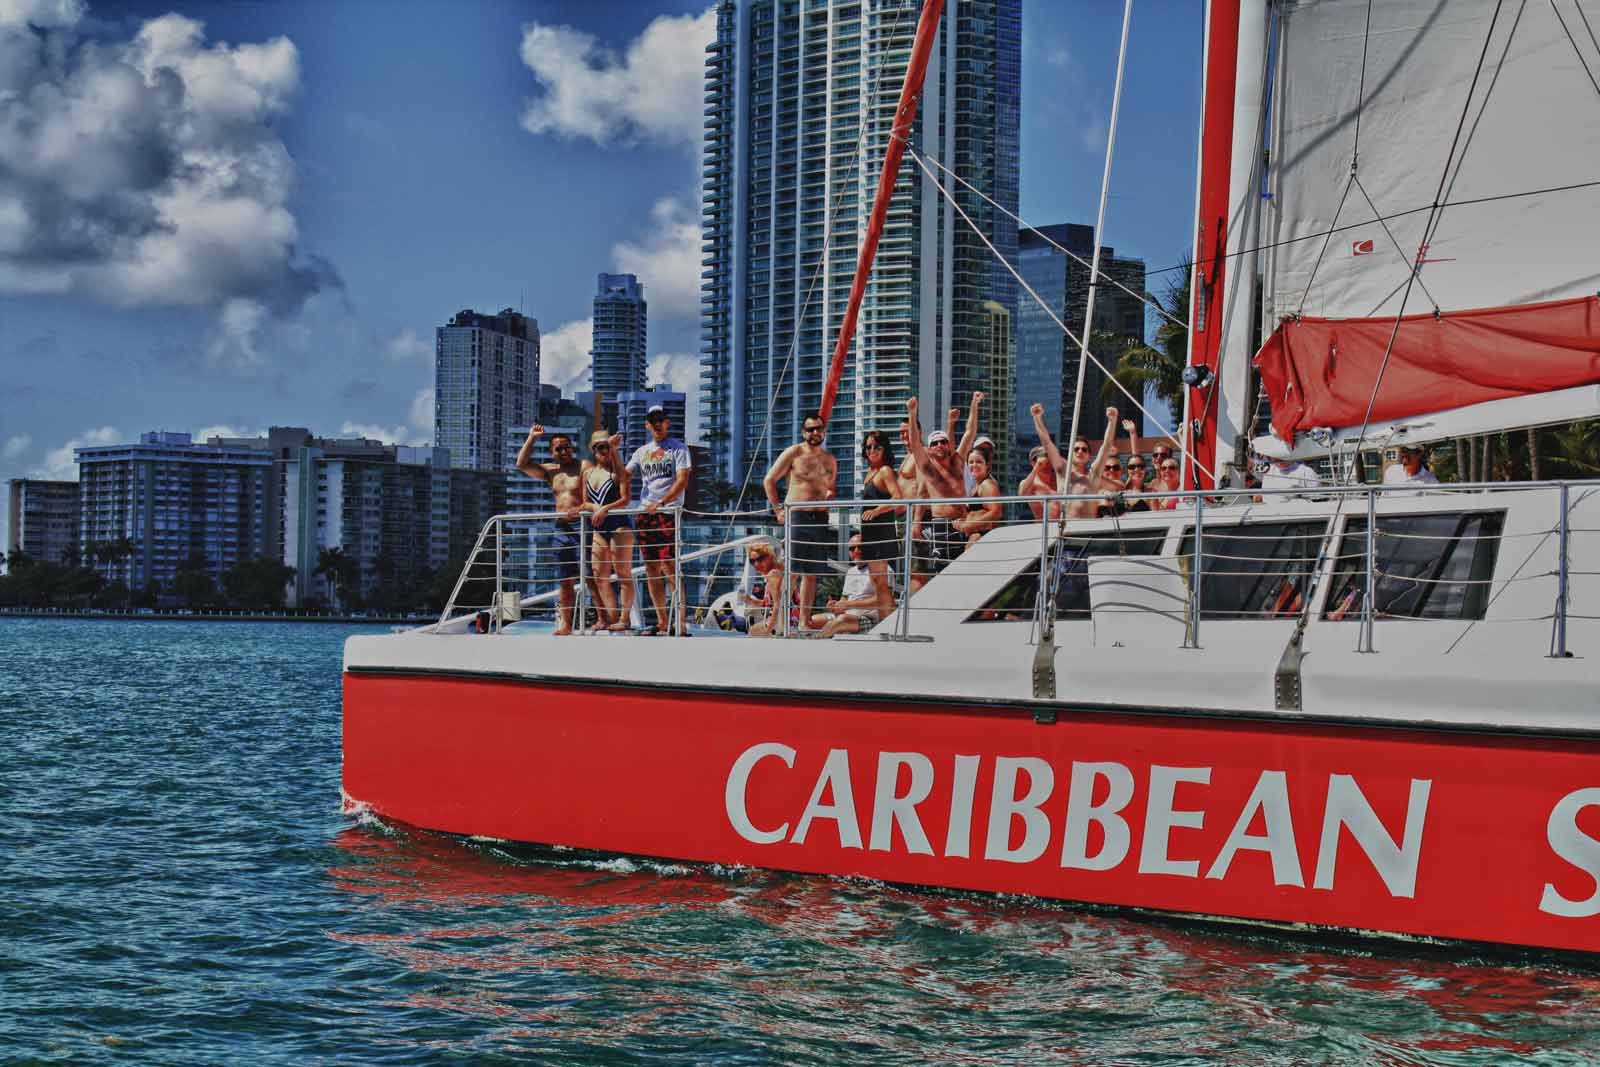 Caribbean Fun: Private Yacht Charter Miami On Our Caribbean Spirit